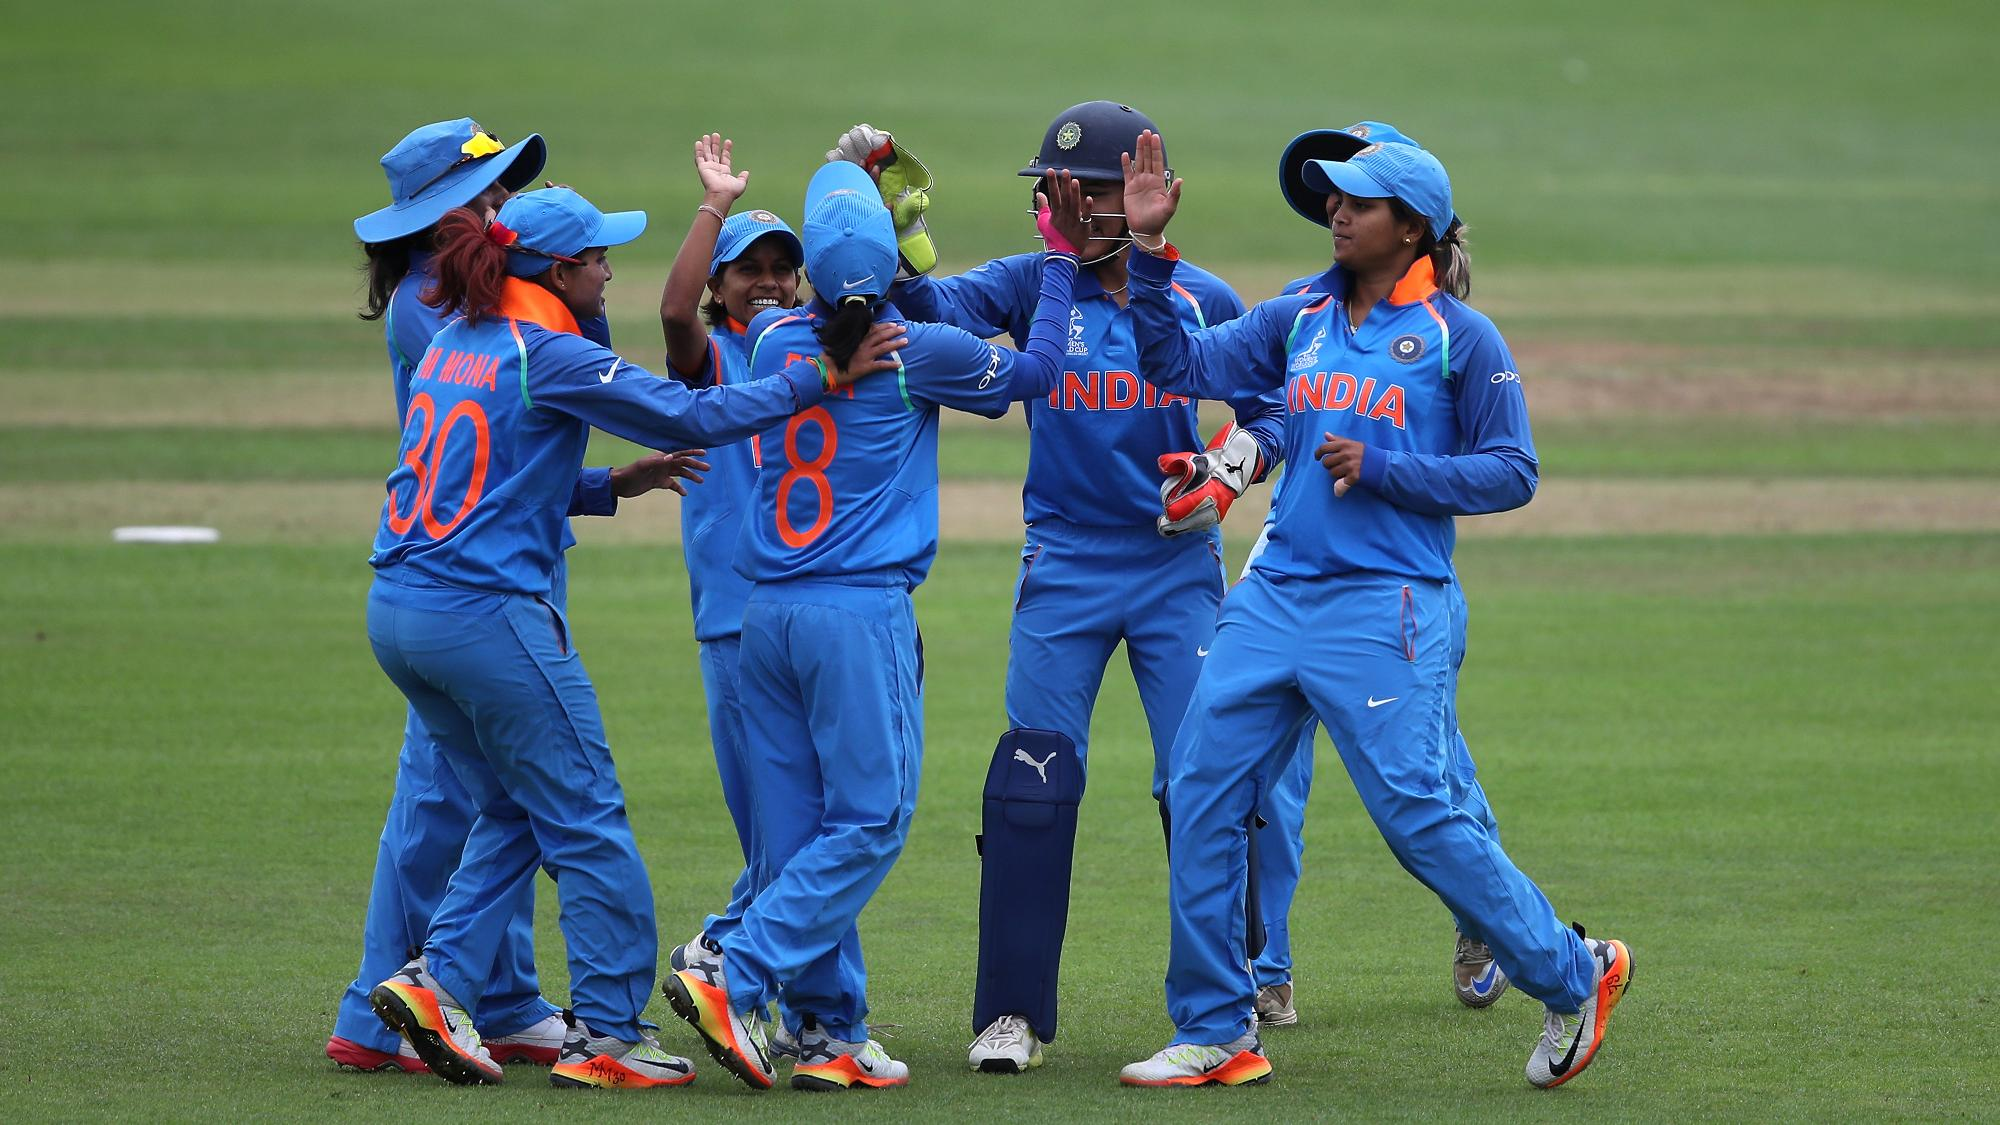 Squads announced for Women's T20 Challenge game